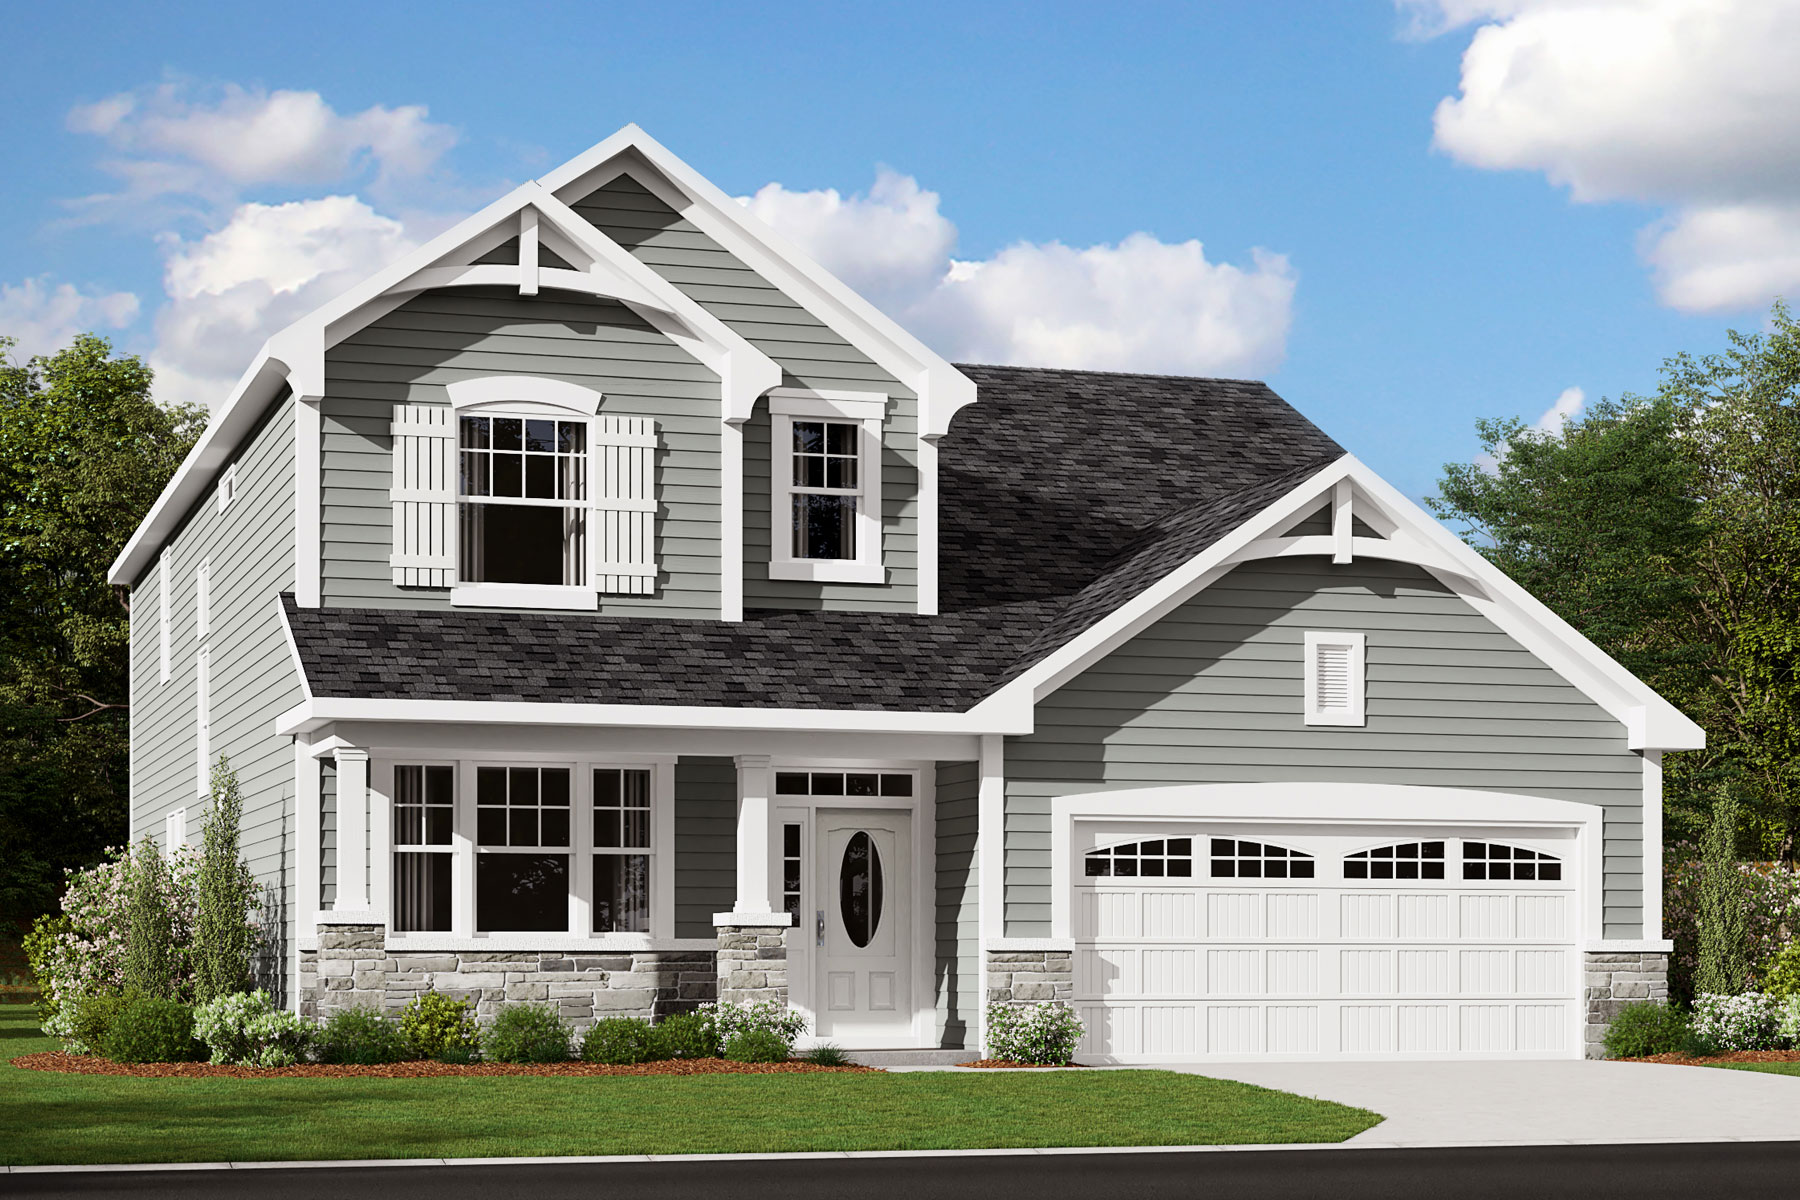 Pierce Plan Elevation Front at Bent Tree in Fuquay-Varina North Carolina by Mattamy Homes